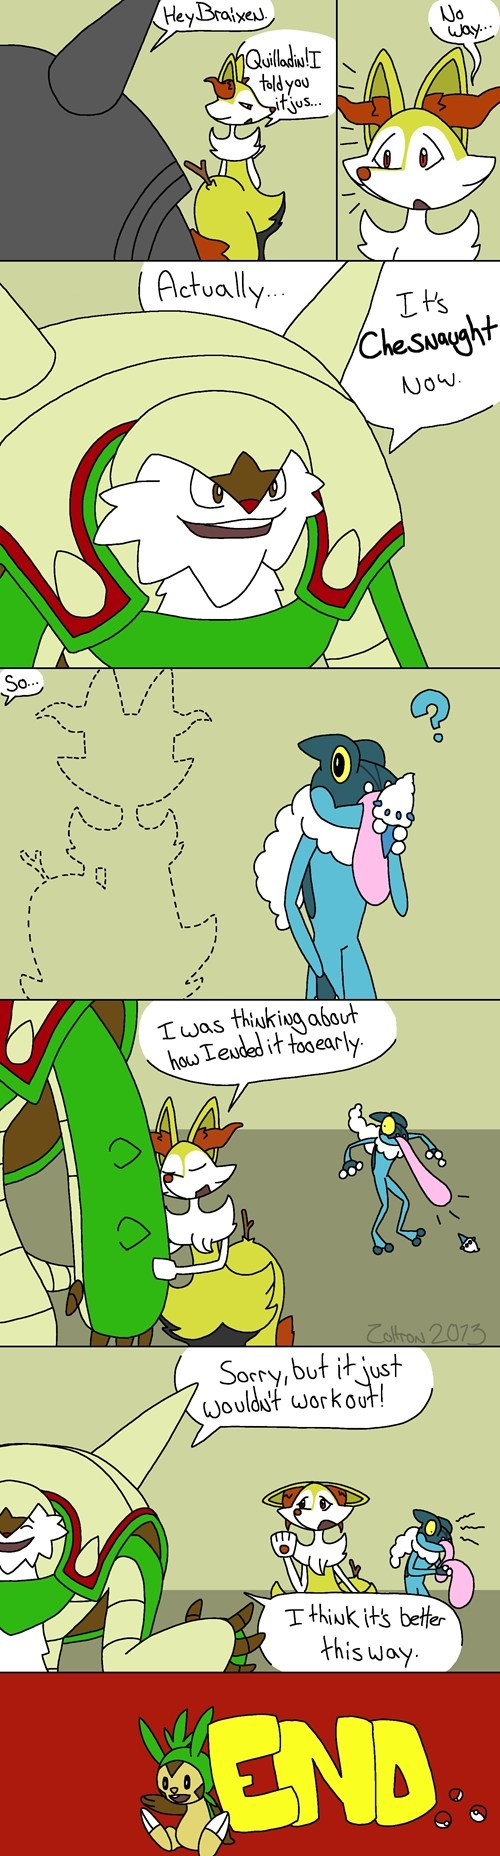 chesnaught quilladin comics - 7836478464